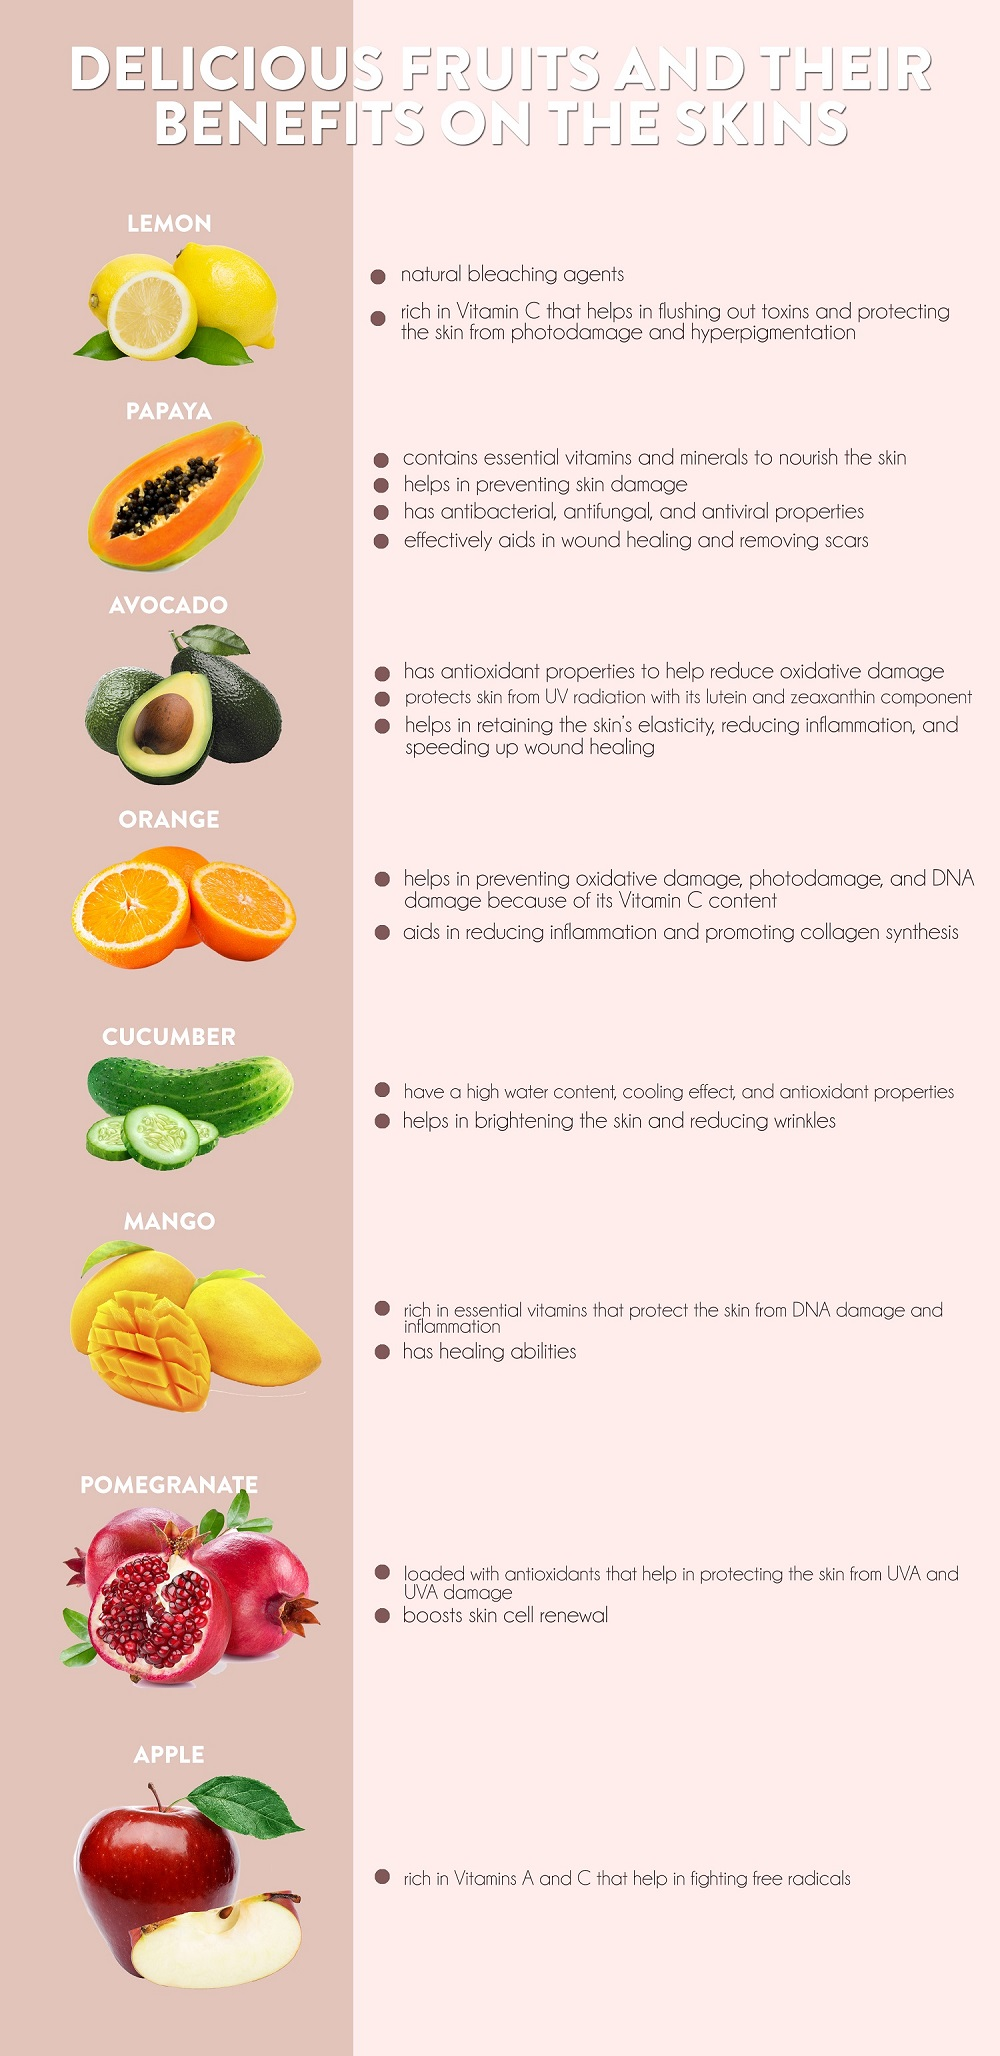 8 delicious fruits and their benefits on the skin - v&m naturals